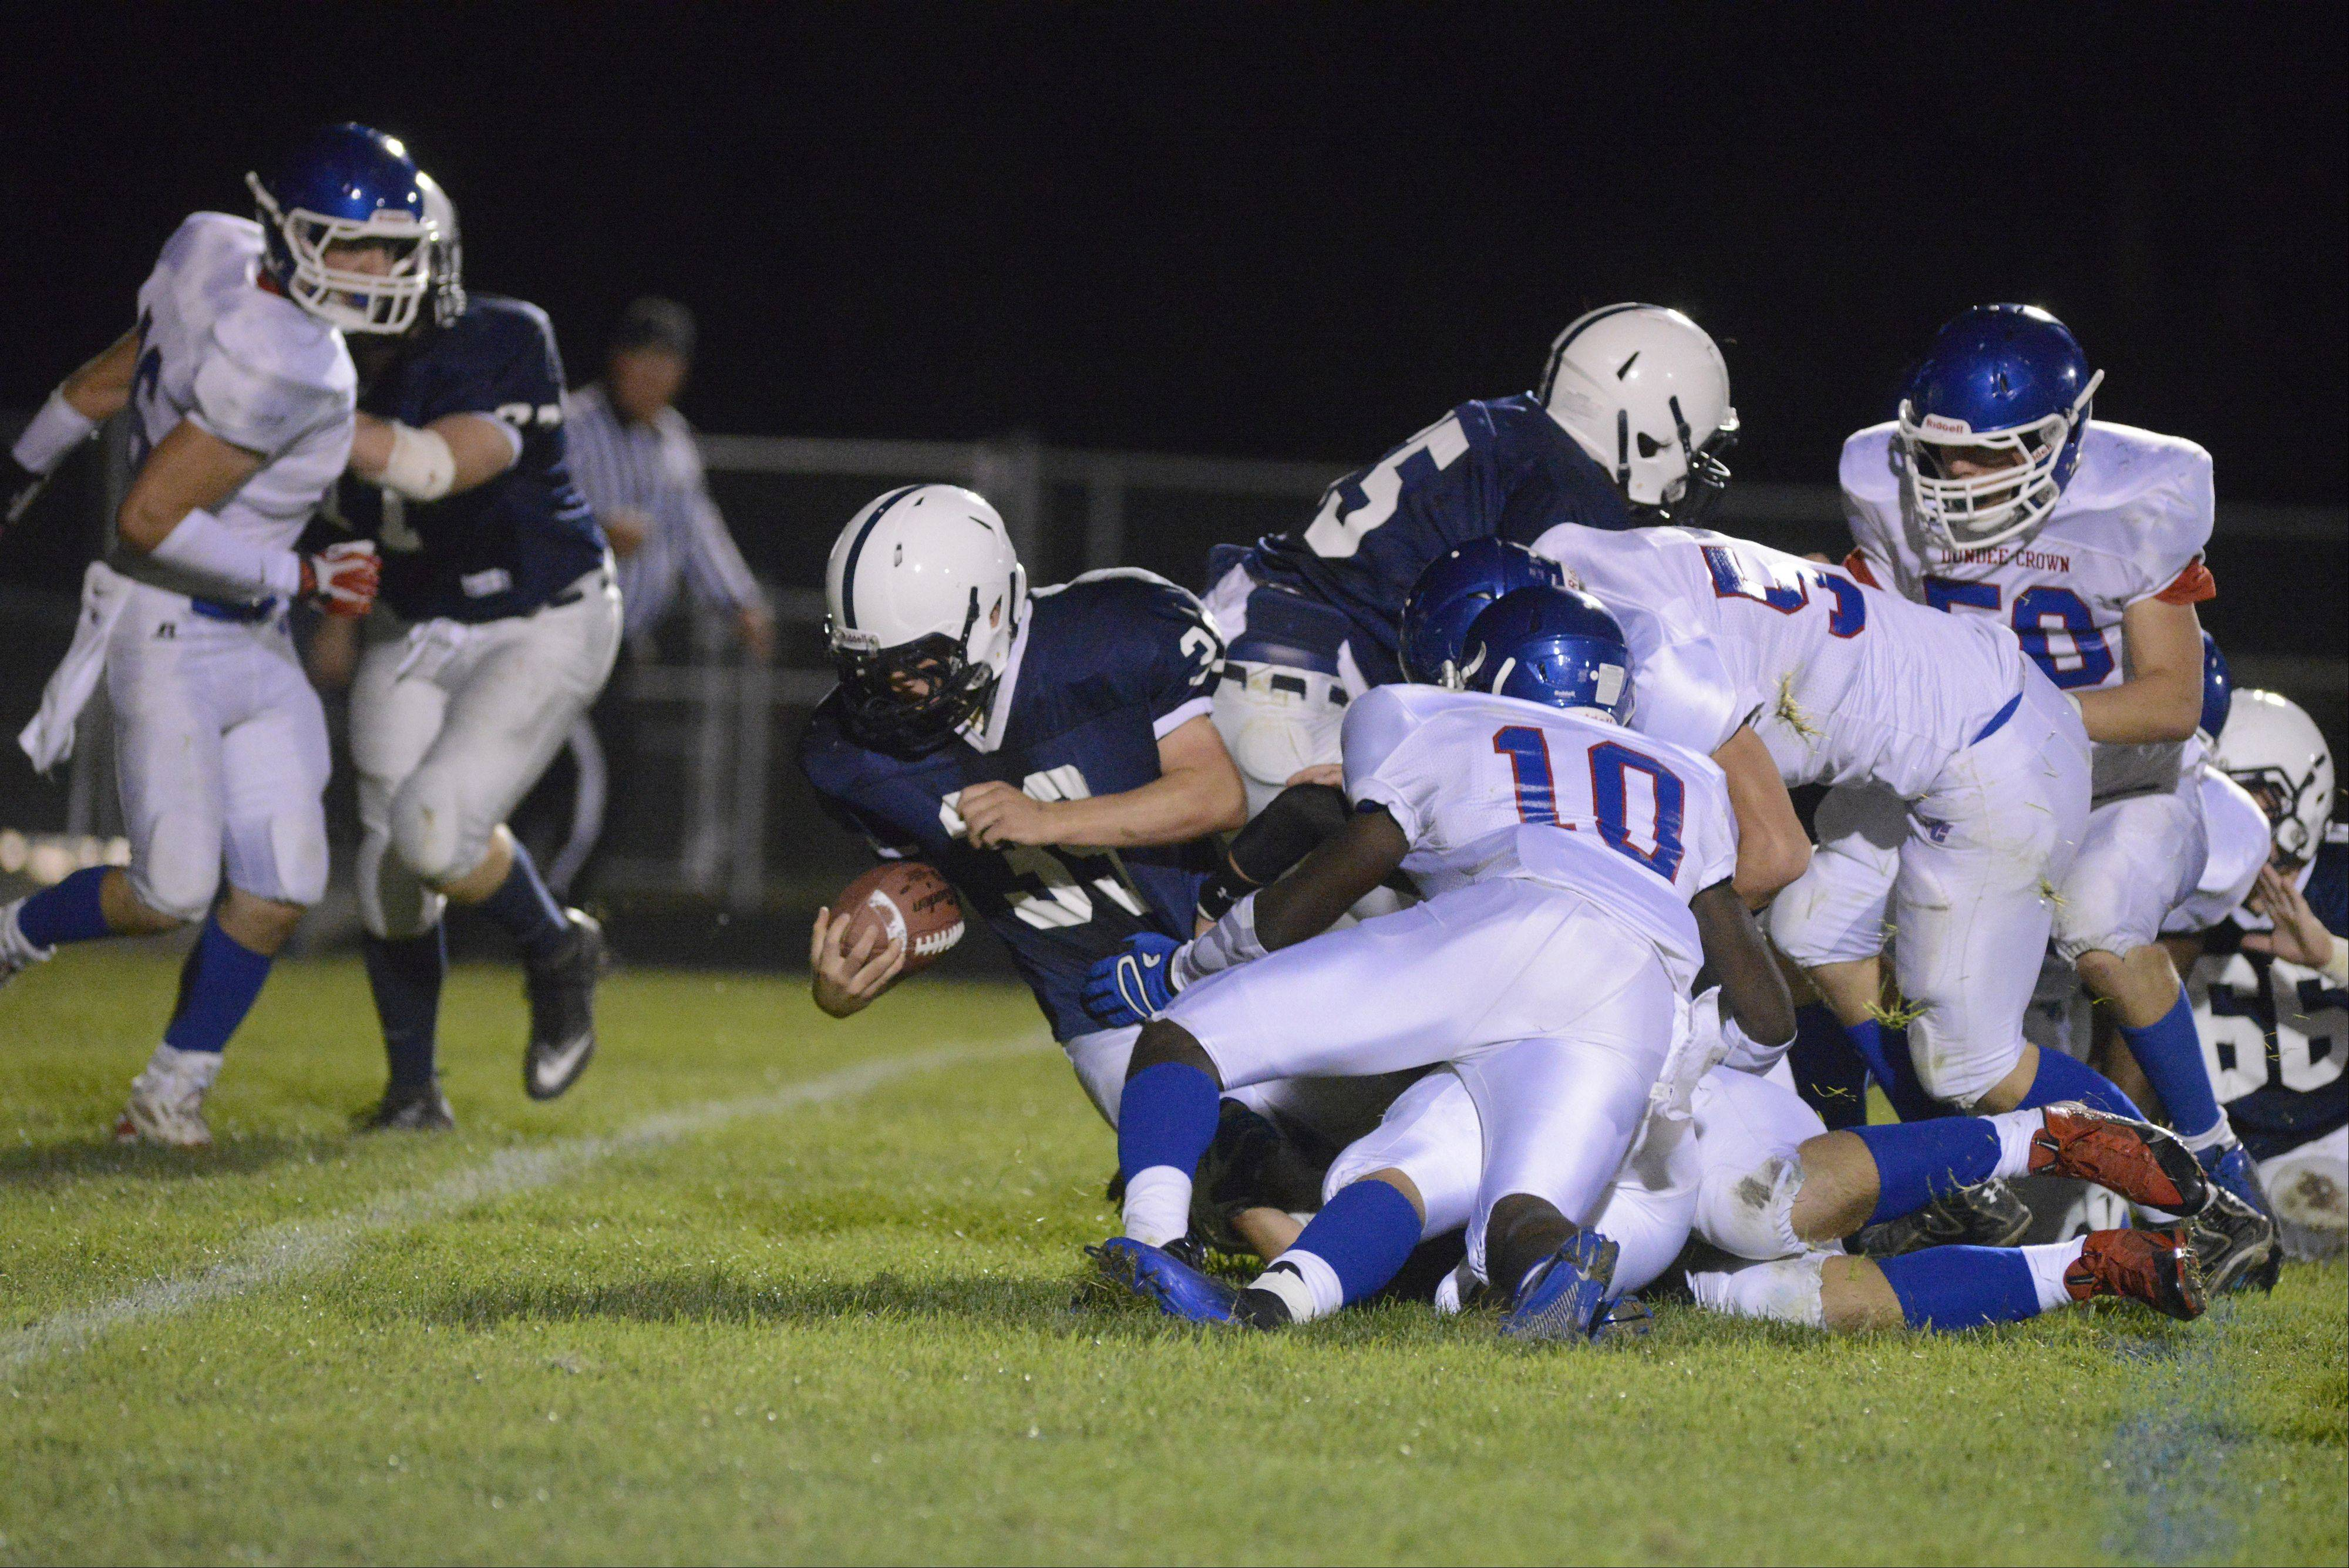 Cary-Grove's Tyler Pennington pops out of a pile up of Trojans and Chargers reaching for the goal line in the first quarter.